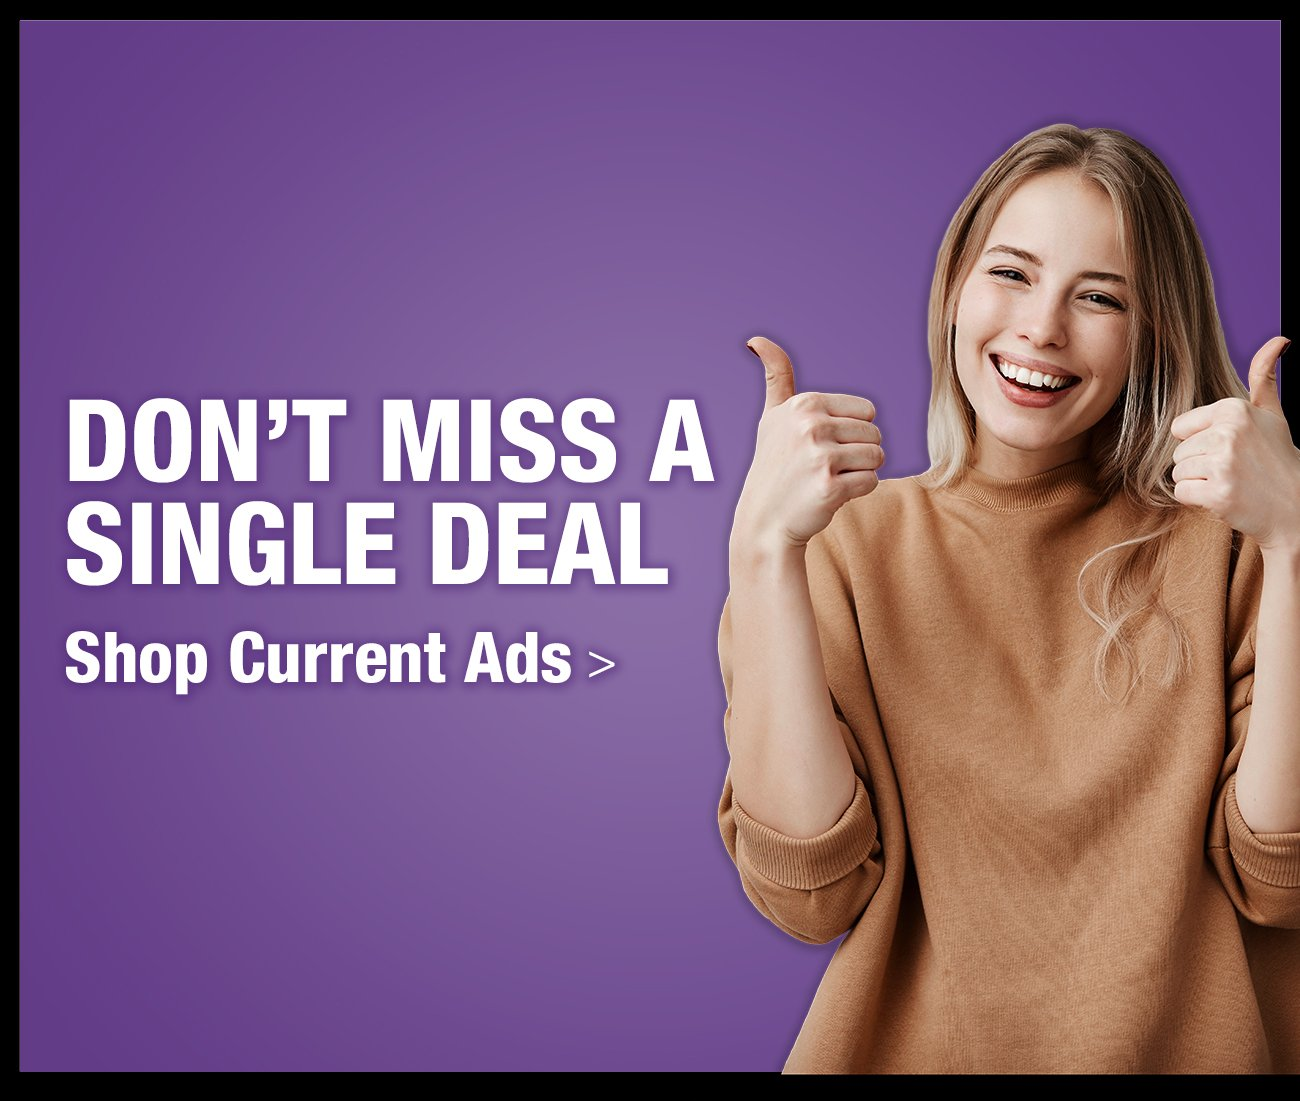 Shop current ads